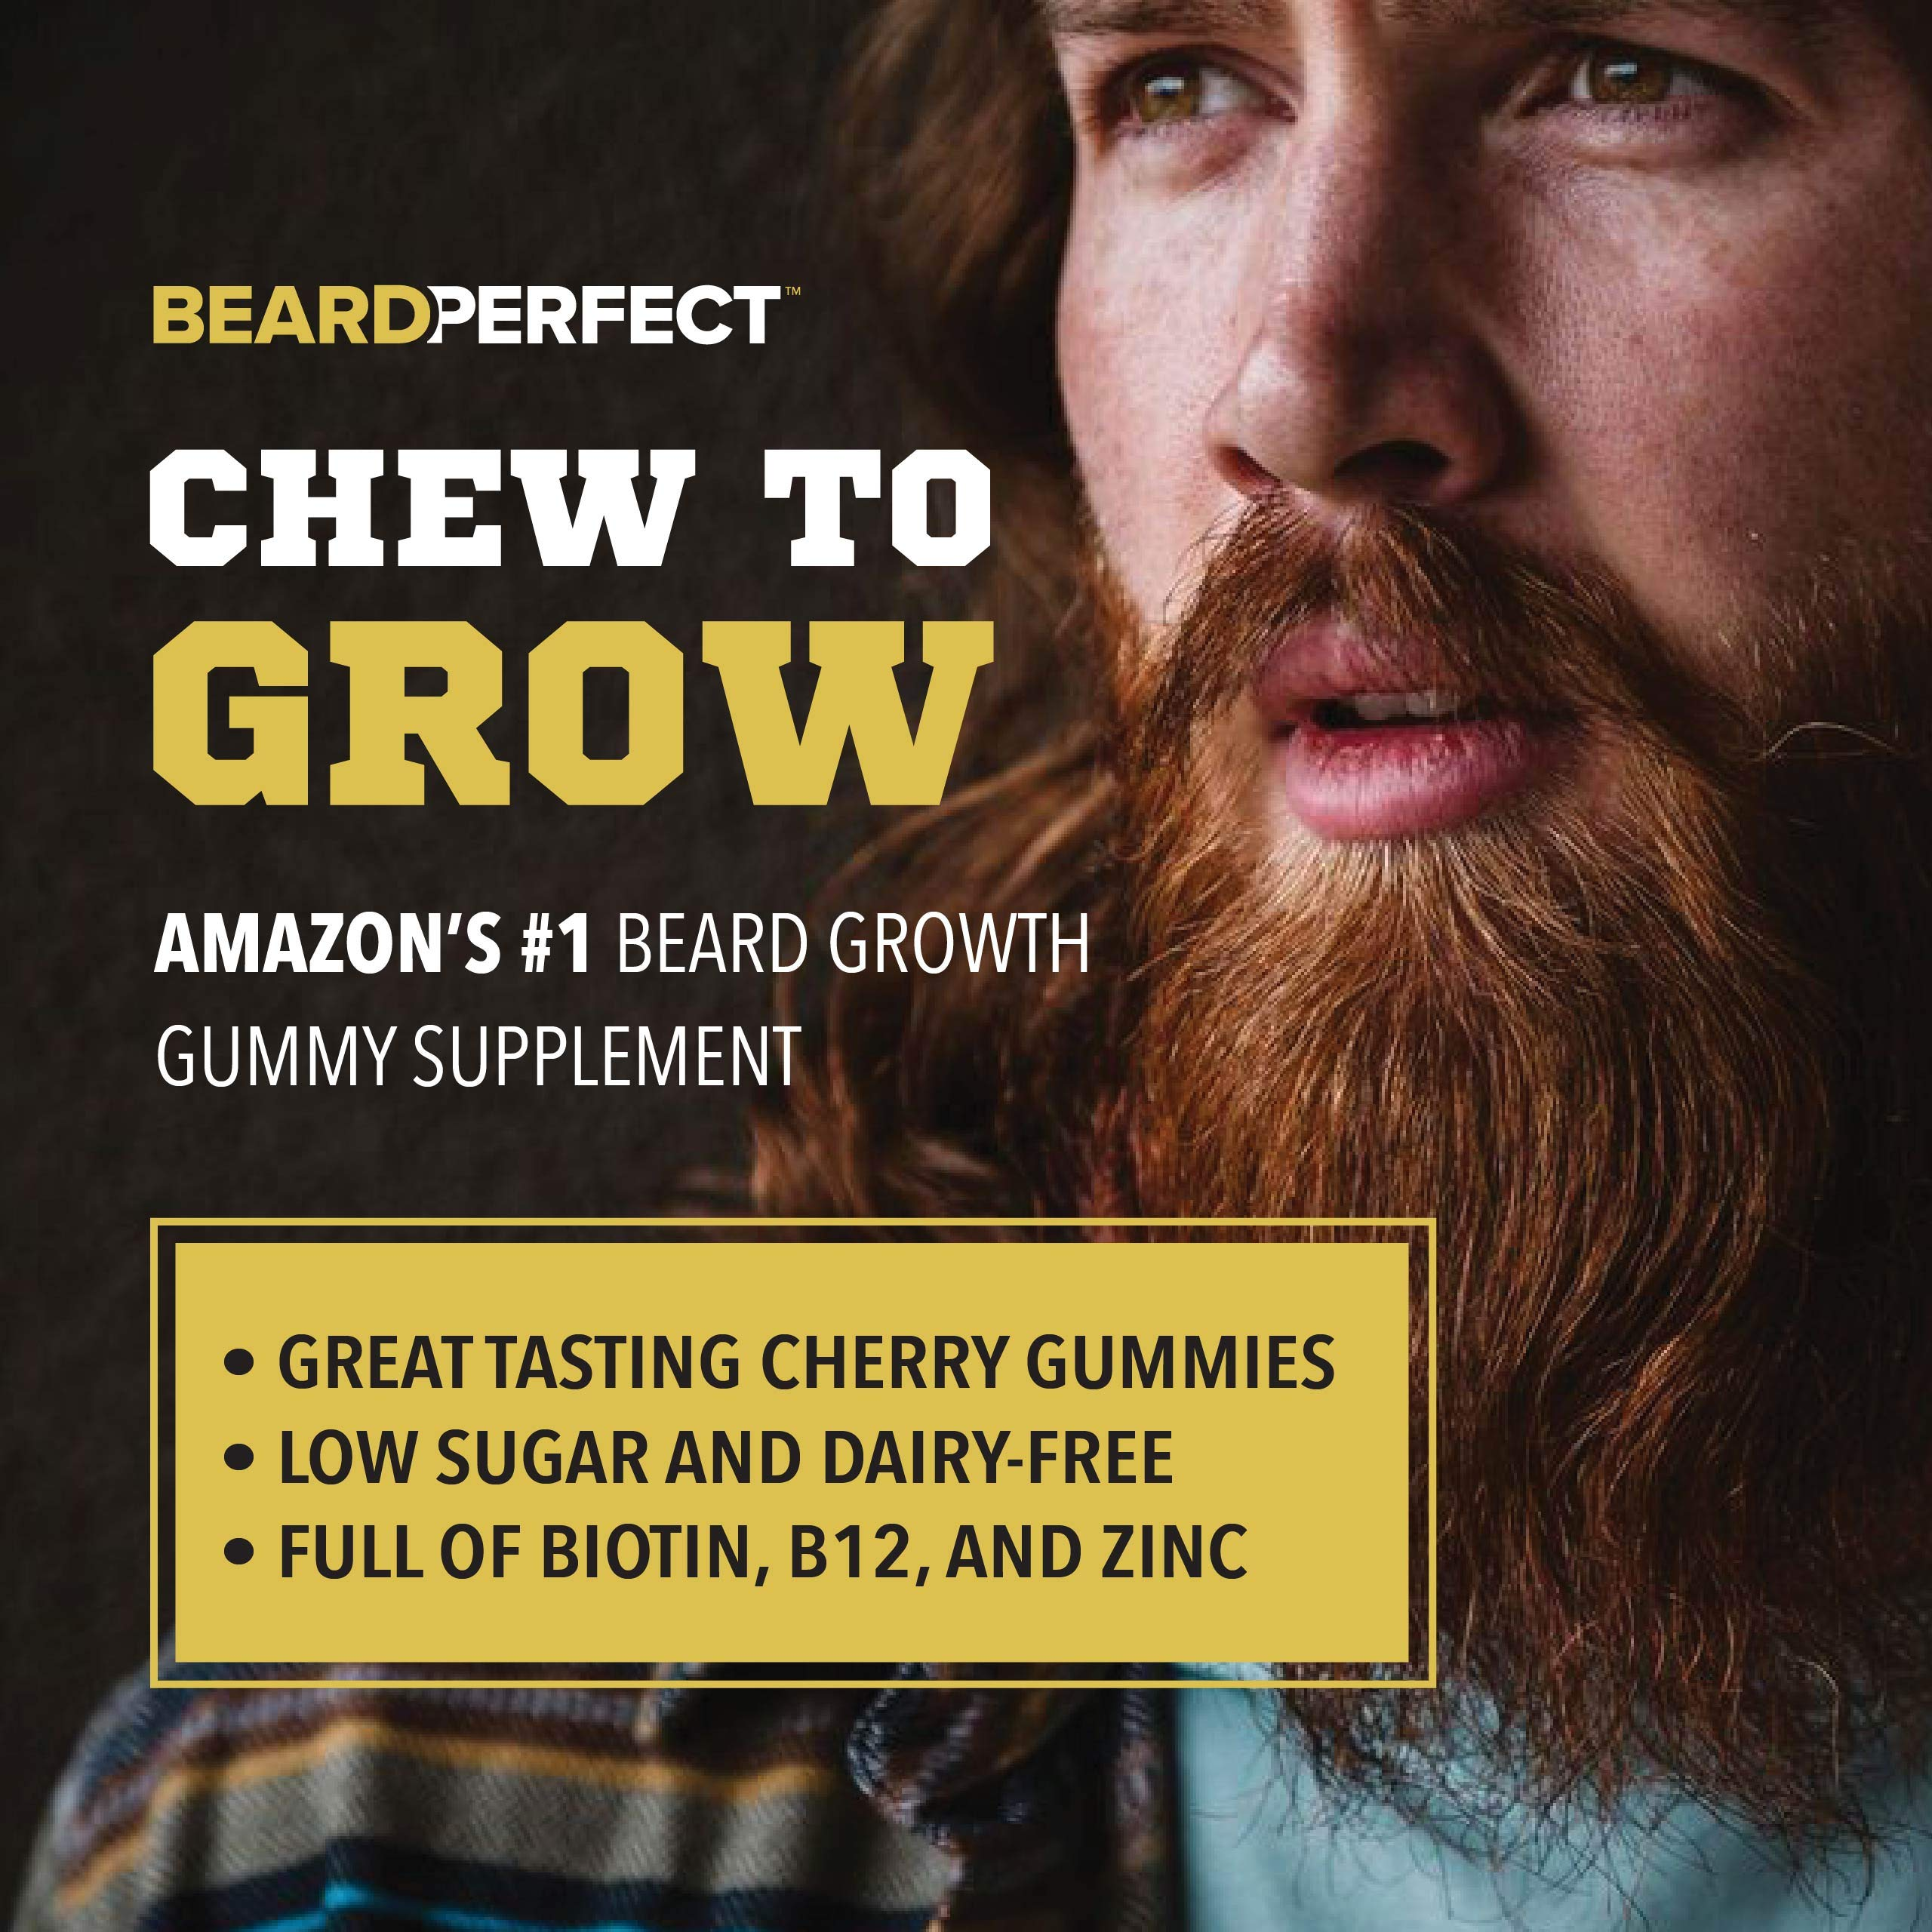 THICKGROW BIGBEARD Gummies - Get a Stronger, Longer, Thicker Beard - Beard Growth Formula for Men - with Biotin, B12, and 10+ Elite Beard-Building Vitamins and Nutrients - 60 Cherry Flavored Gummies! by BeardPerfect